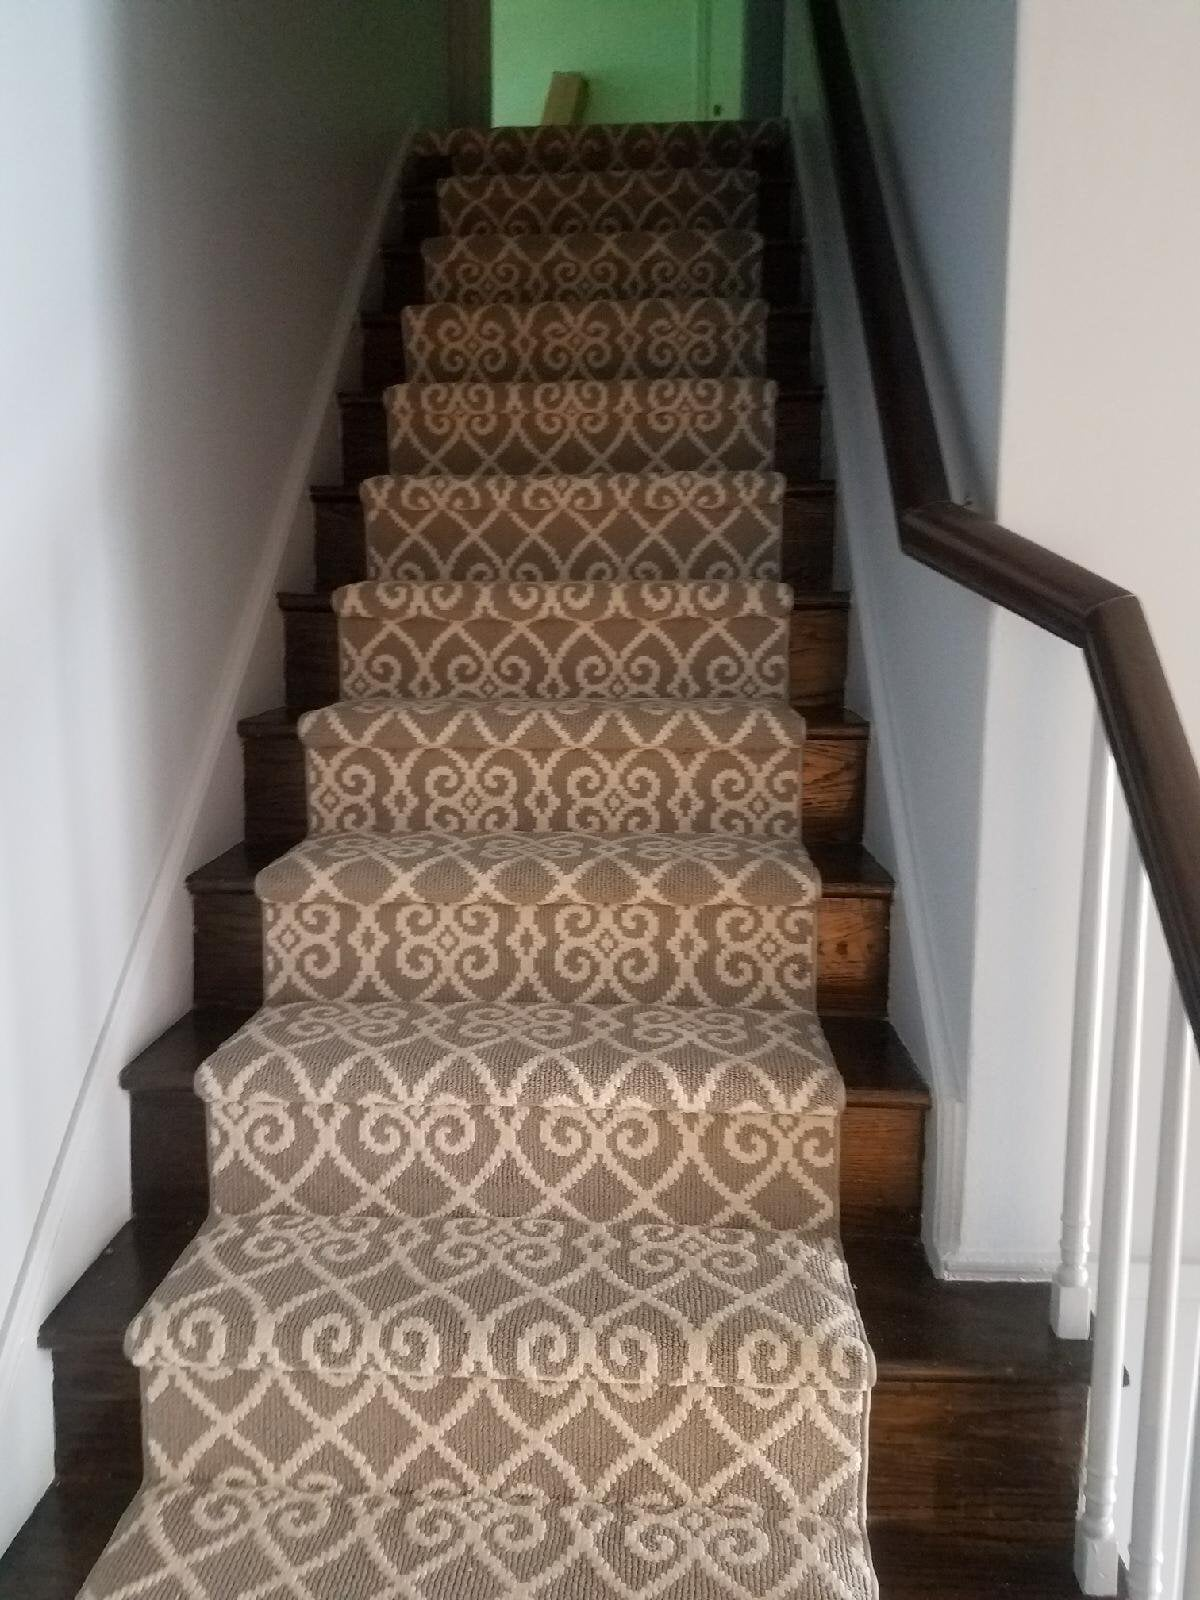 Custom carpeted stairs from Reinhart Carpet Outlet in Philadelphia, PA